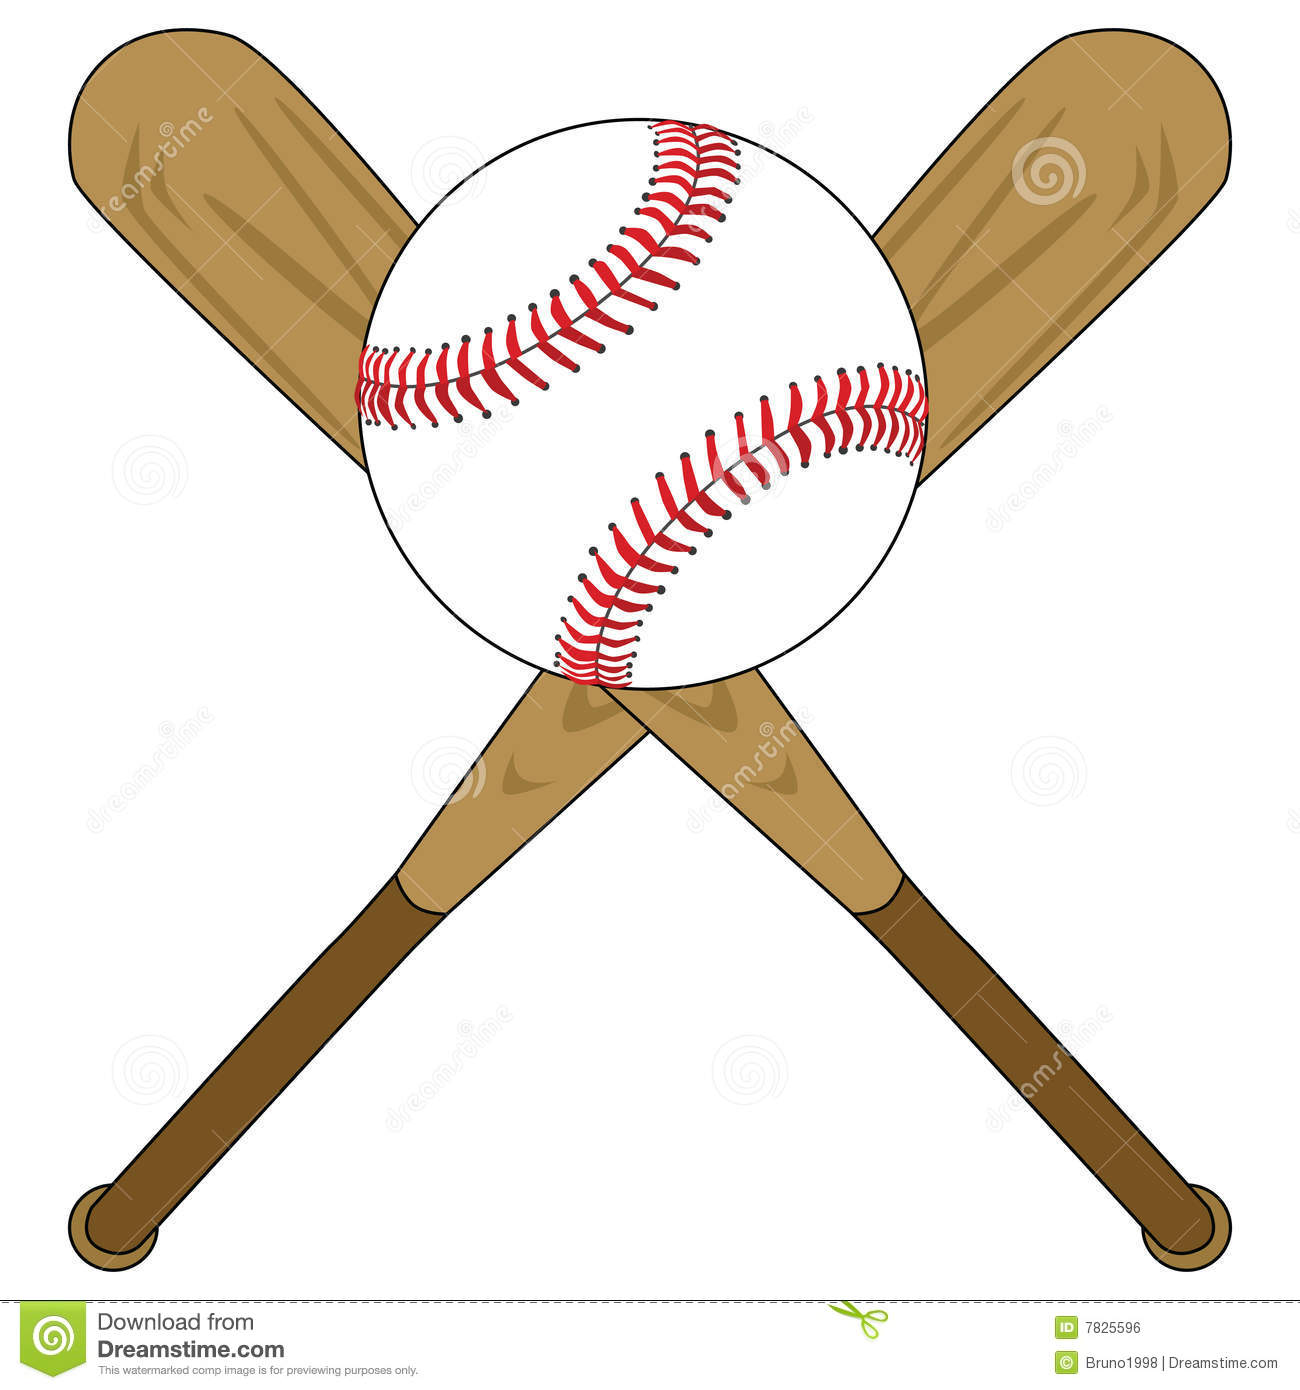 Baseball Bats And Ball Stock Vector Illustration Of Graphic 7825596